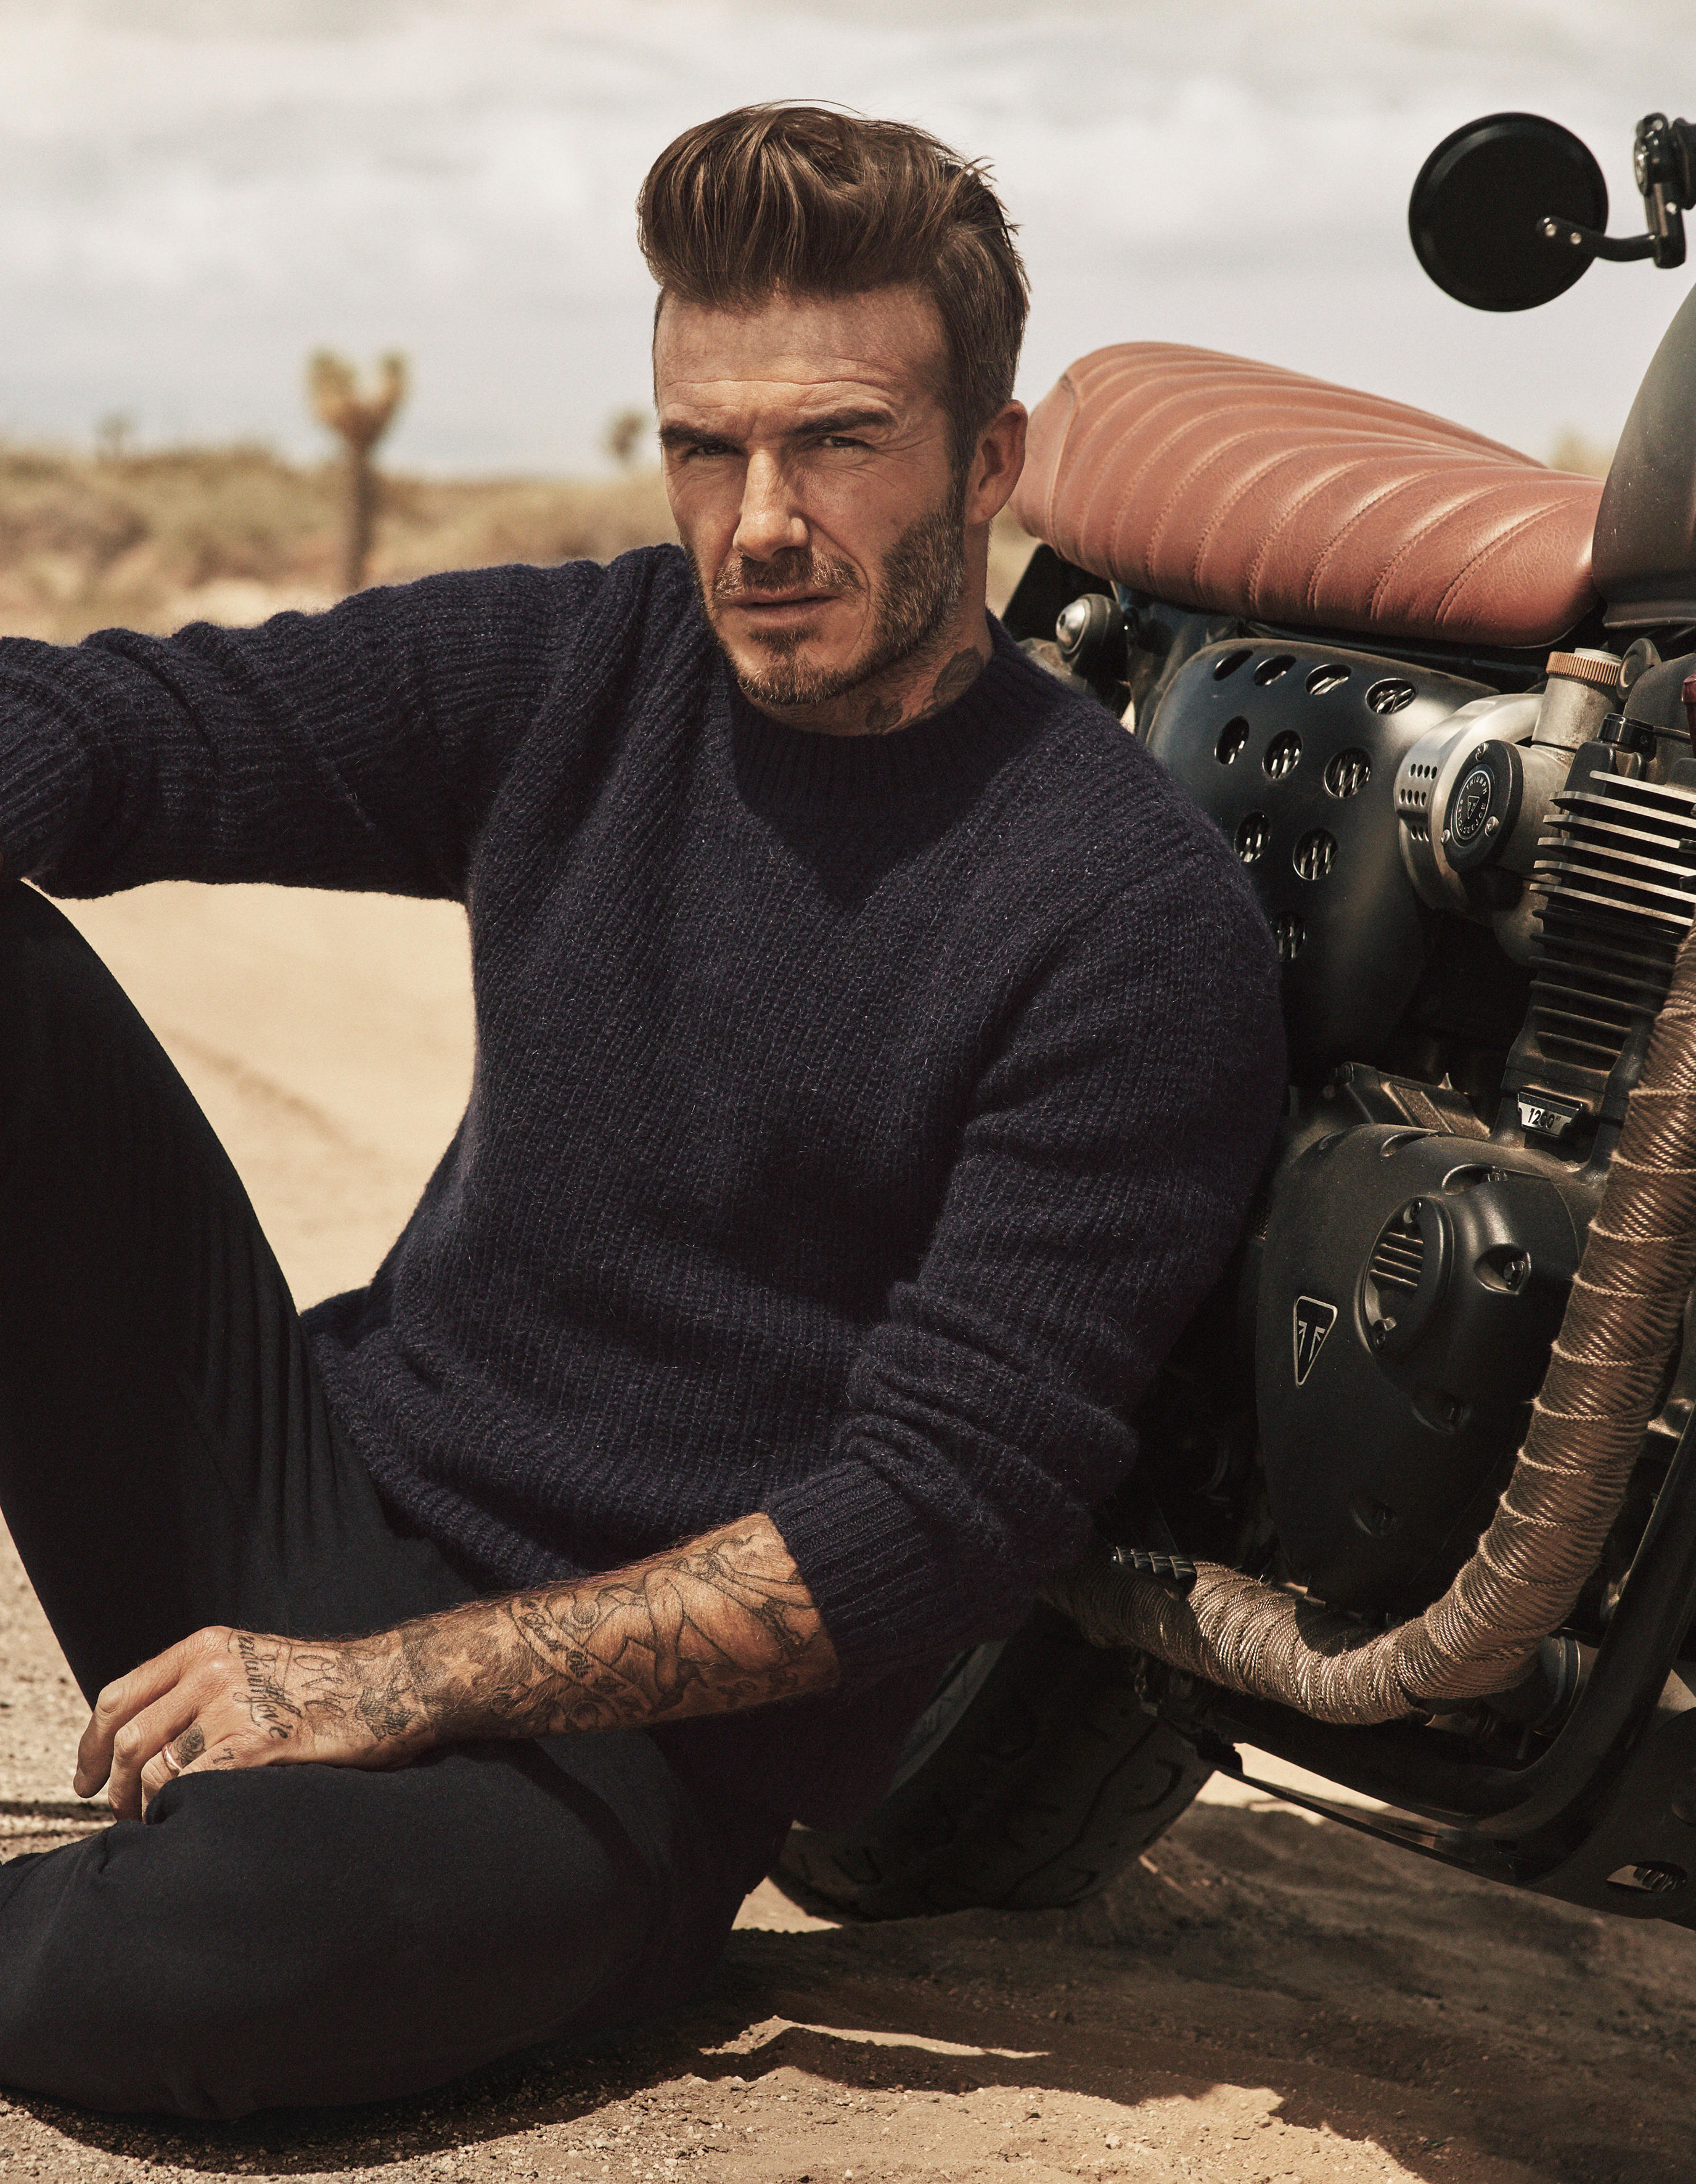 David Beckham And Kevin Hart Reunite For A Road Trip In New Hm